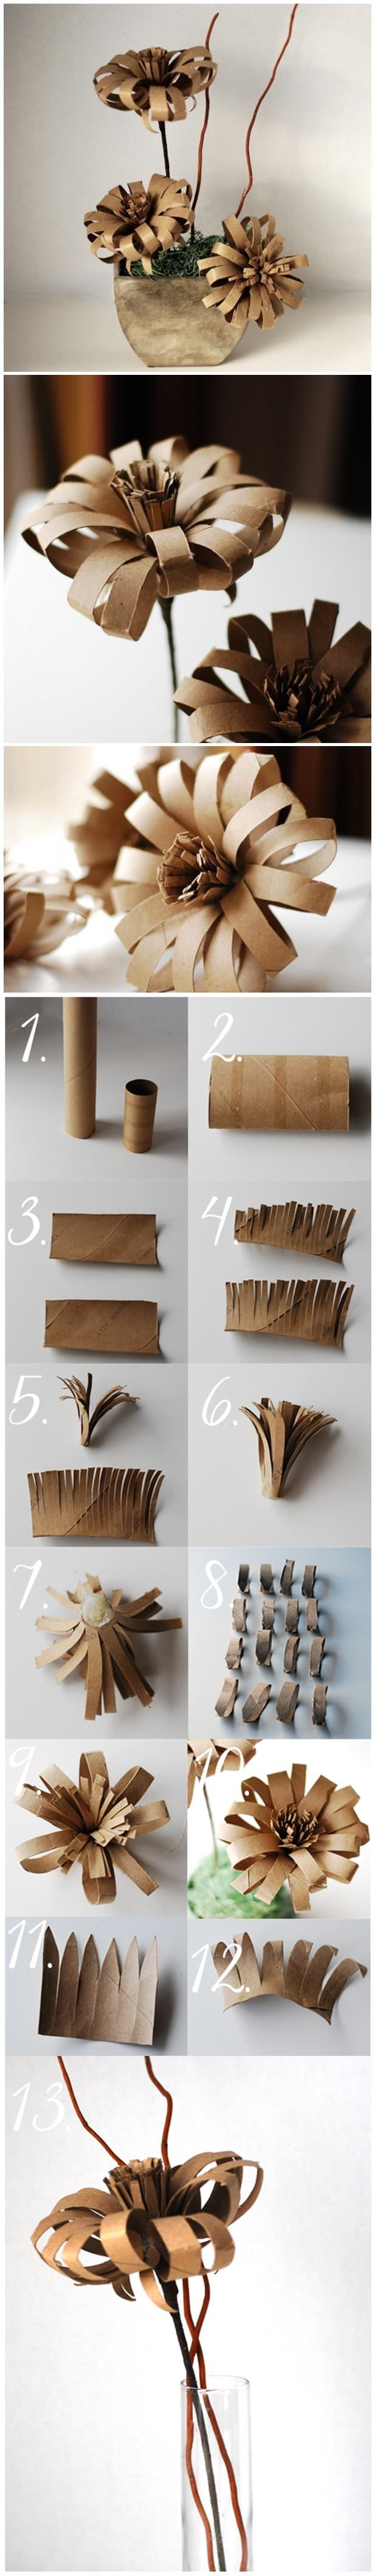 Diy Toilet Paper Roll Flowers